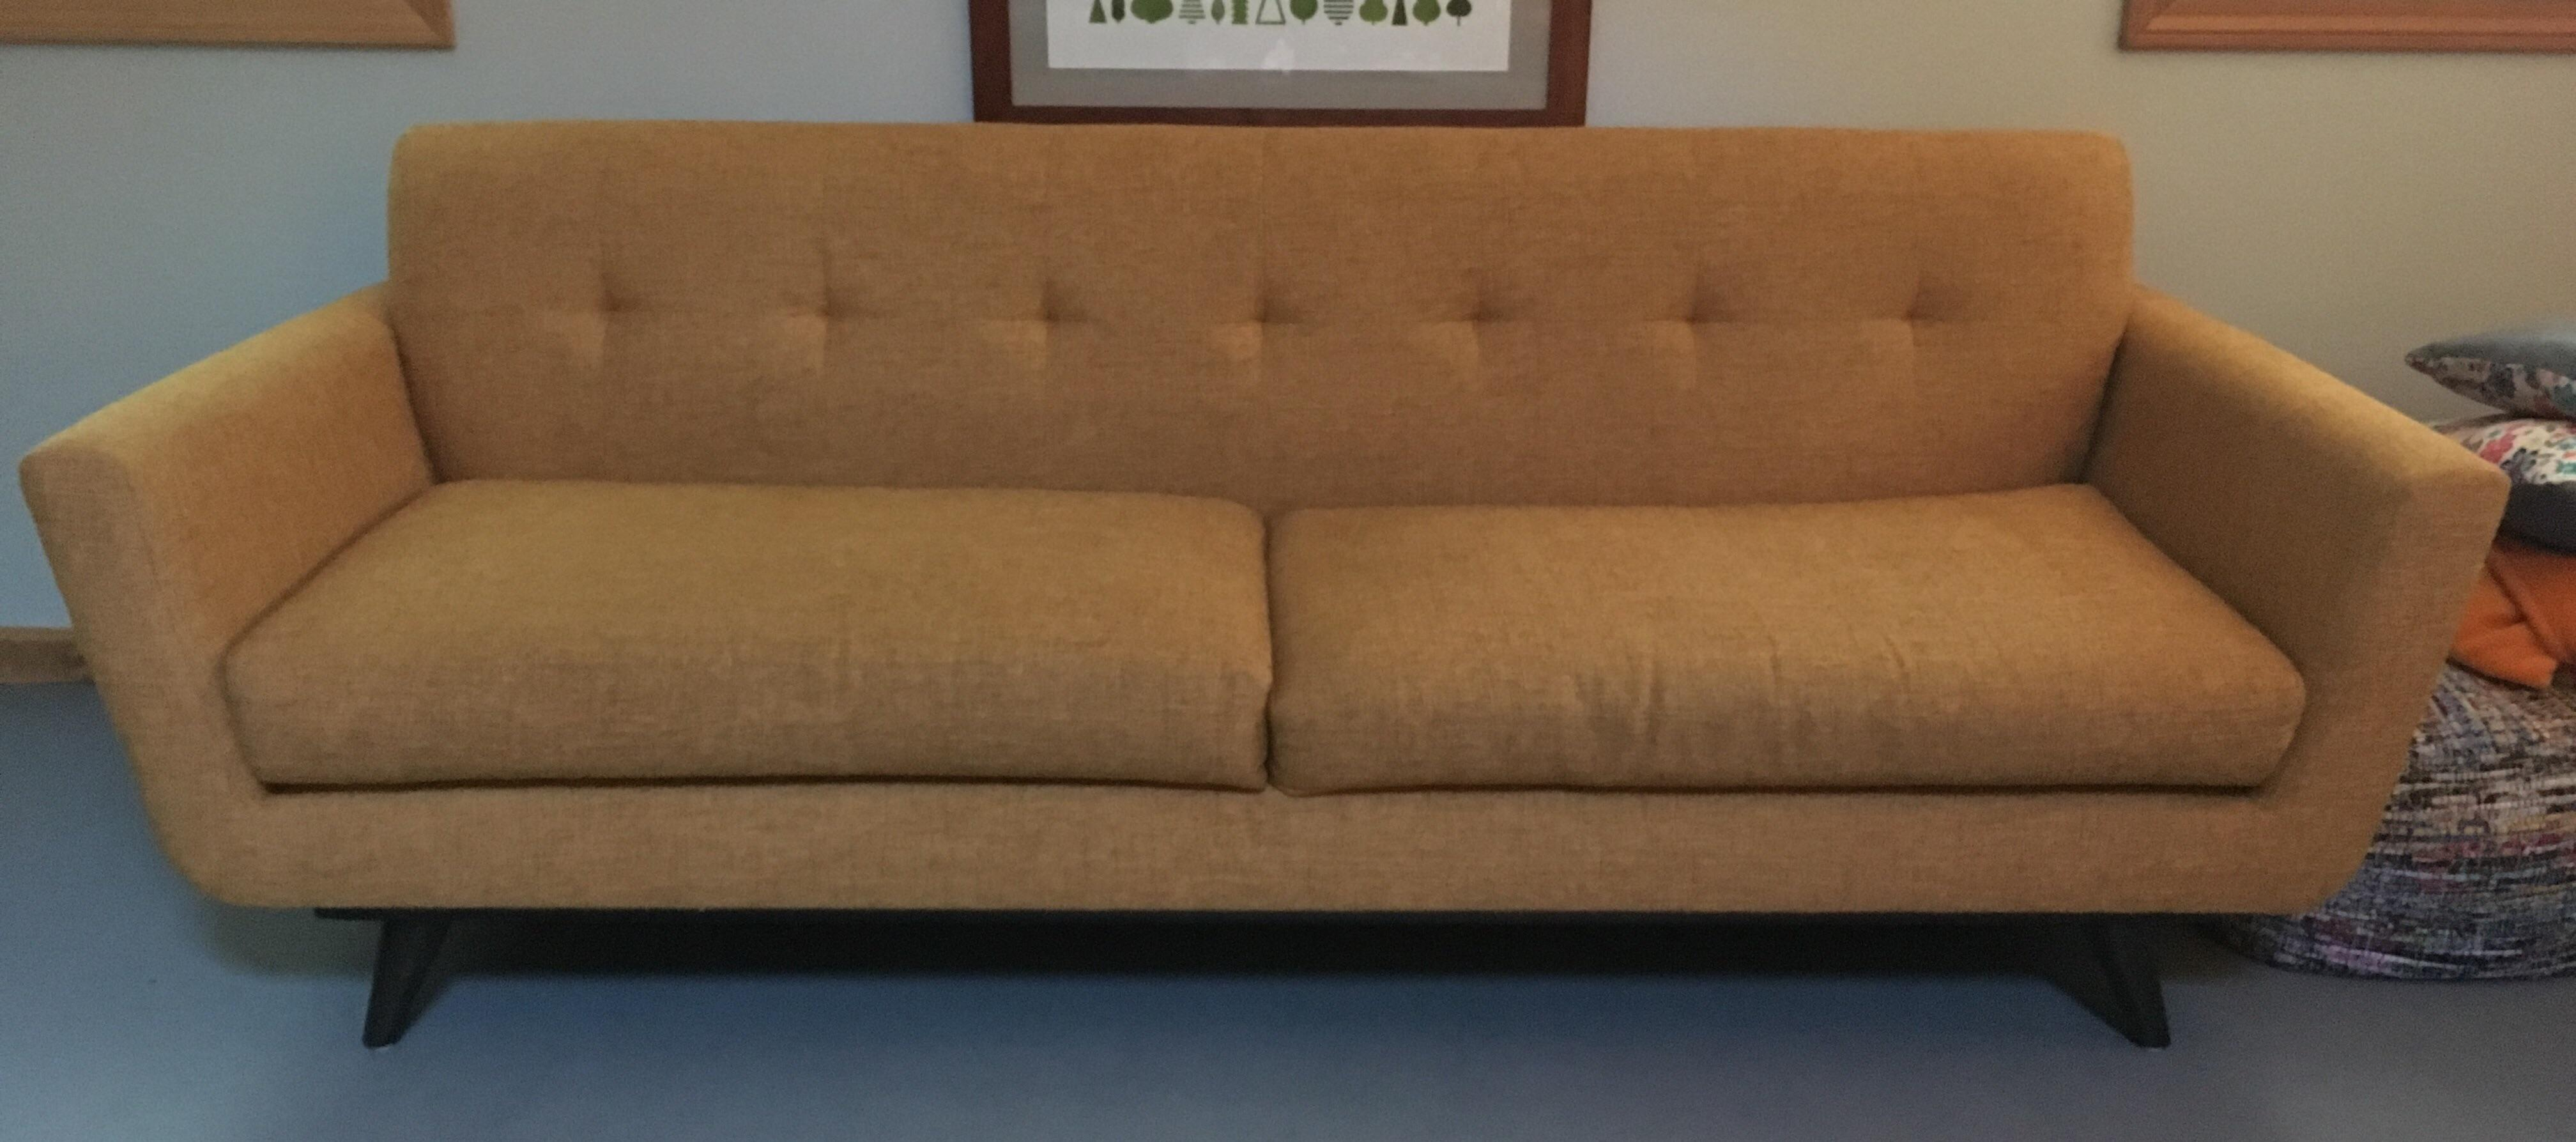 Genial Mid Century Modern Nixon Sofa. About 3 Years Old, Good Condition, No